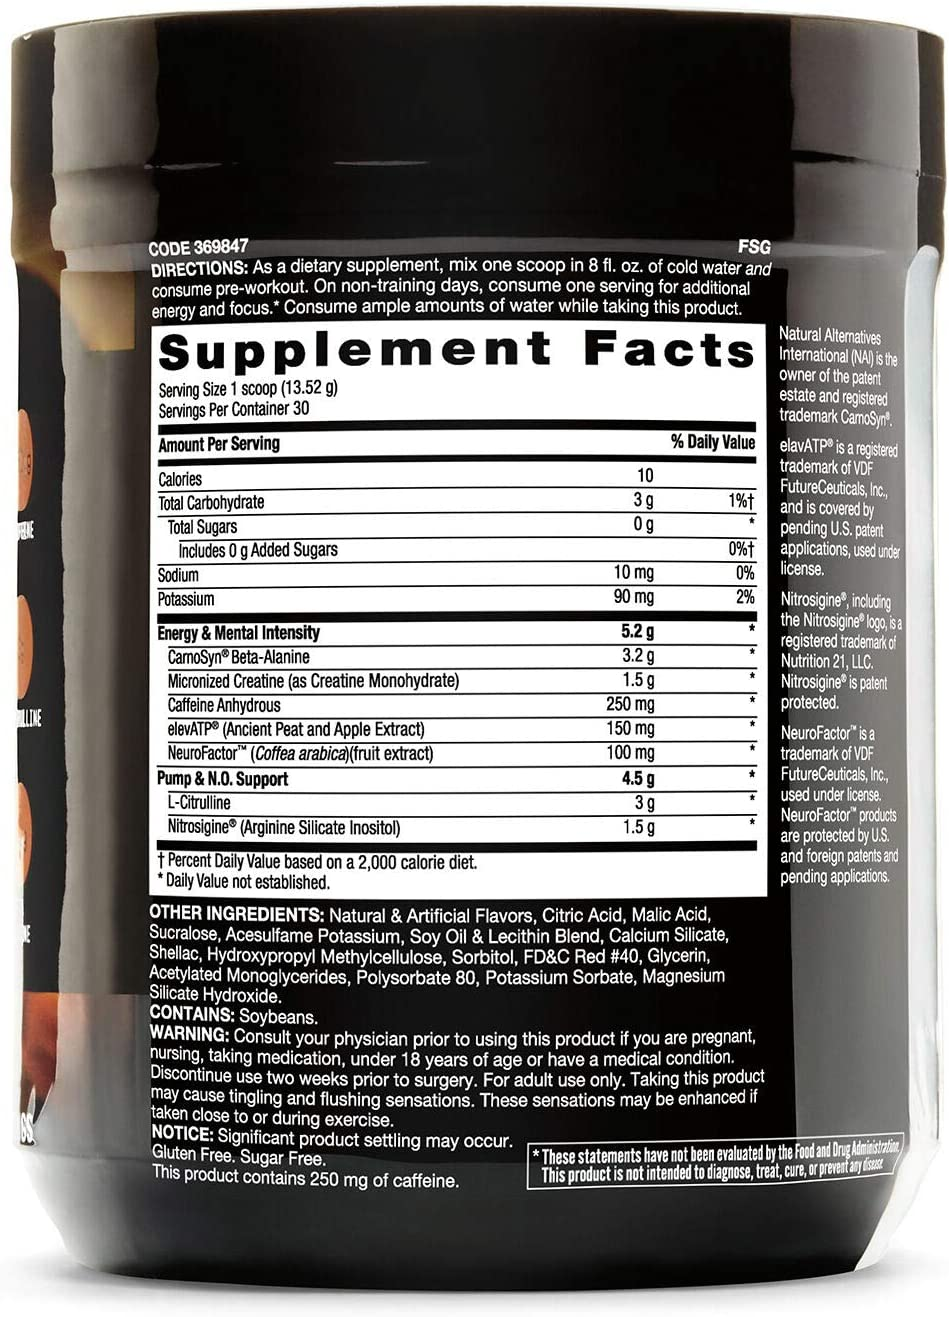 Beyond Raw LIT Pre Workout Powder Energy Drink Cotton Candy 30 Servings Contains Caffeine, L-Citruline, and Beta-Alanine Nitric Oxide and Preworkout Supplement